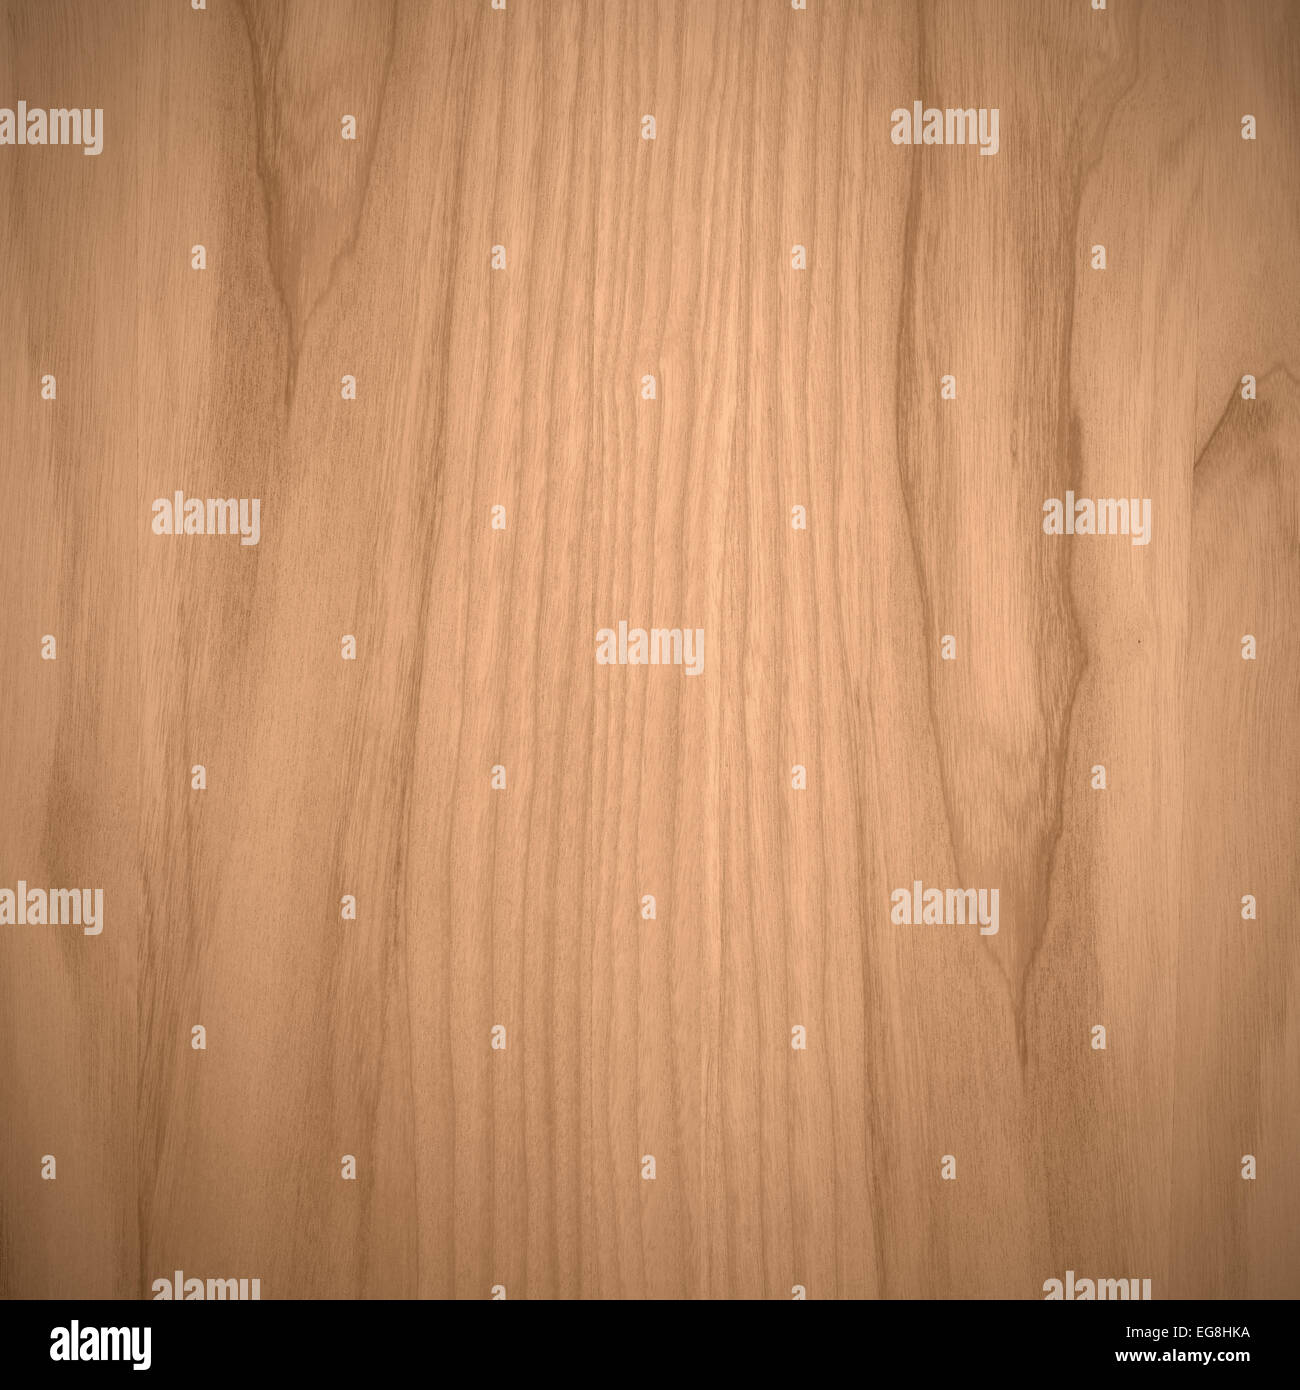 Planche en bois brut ou en bois fond texture grain brown Photo Stock